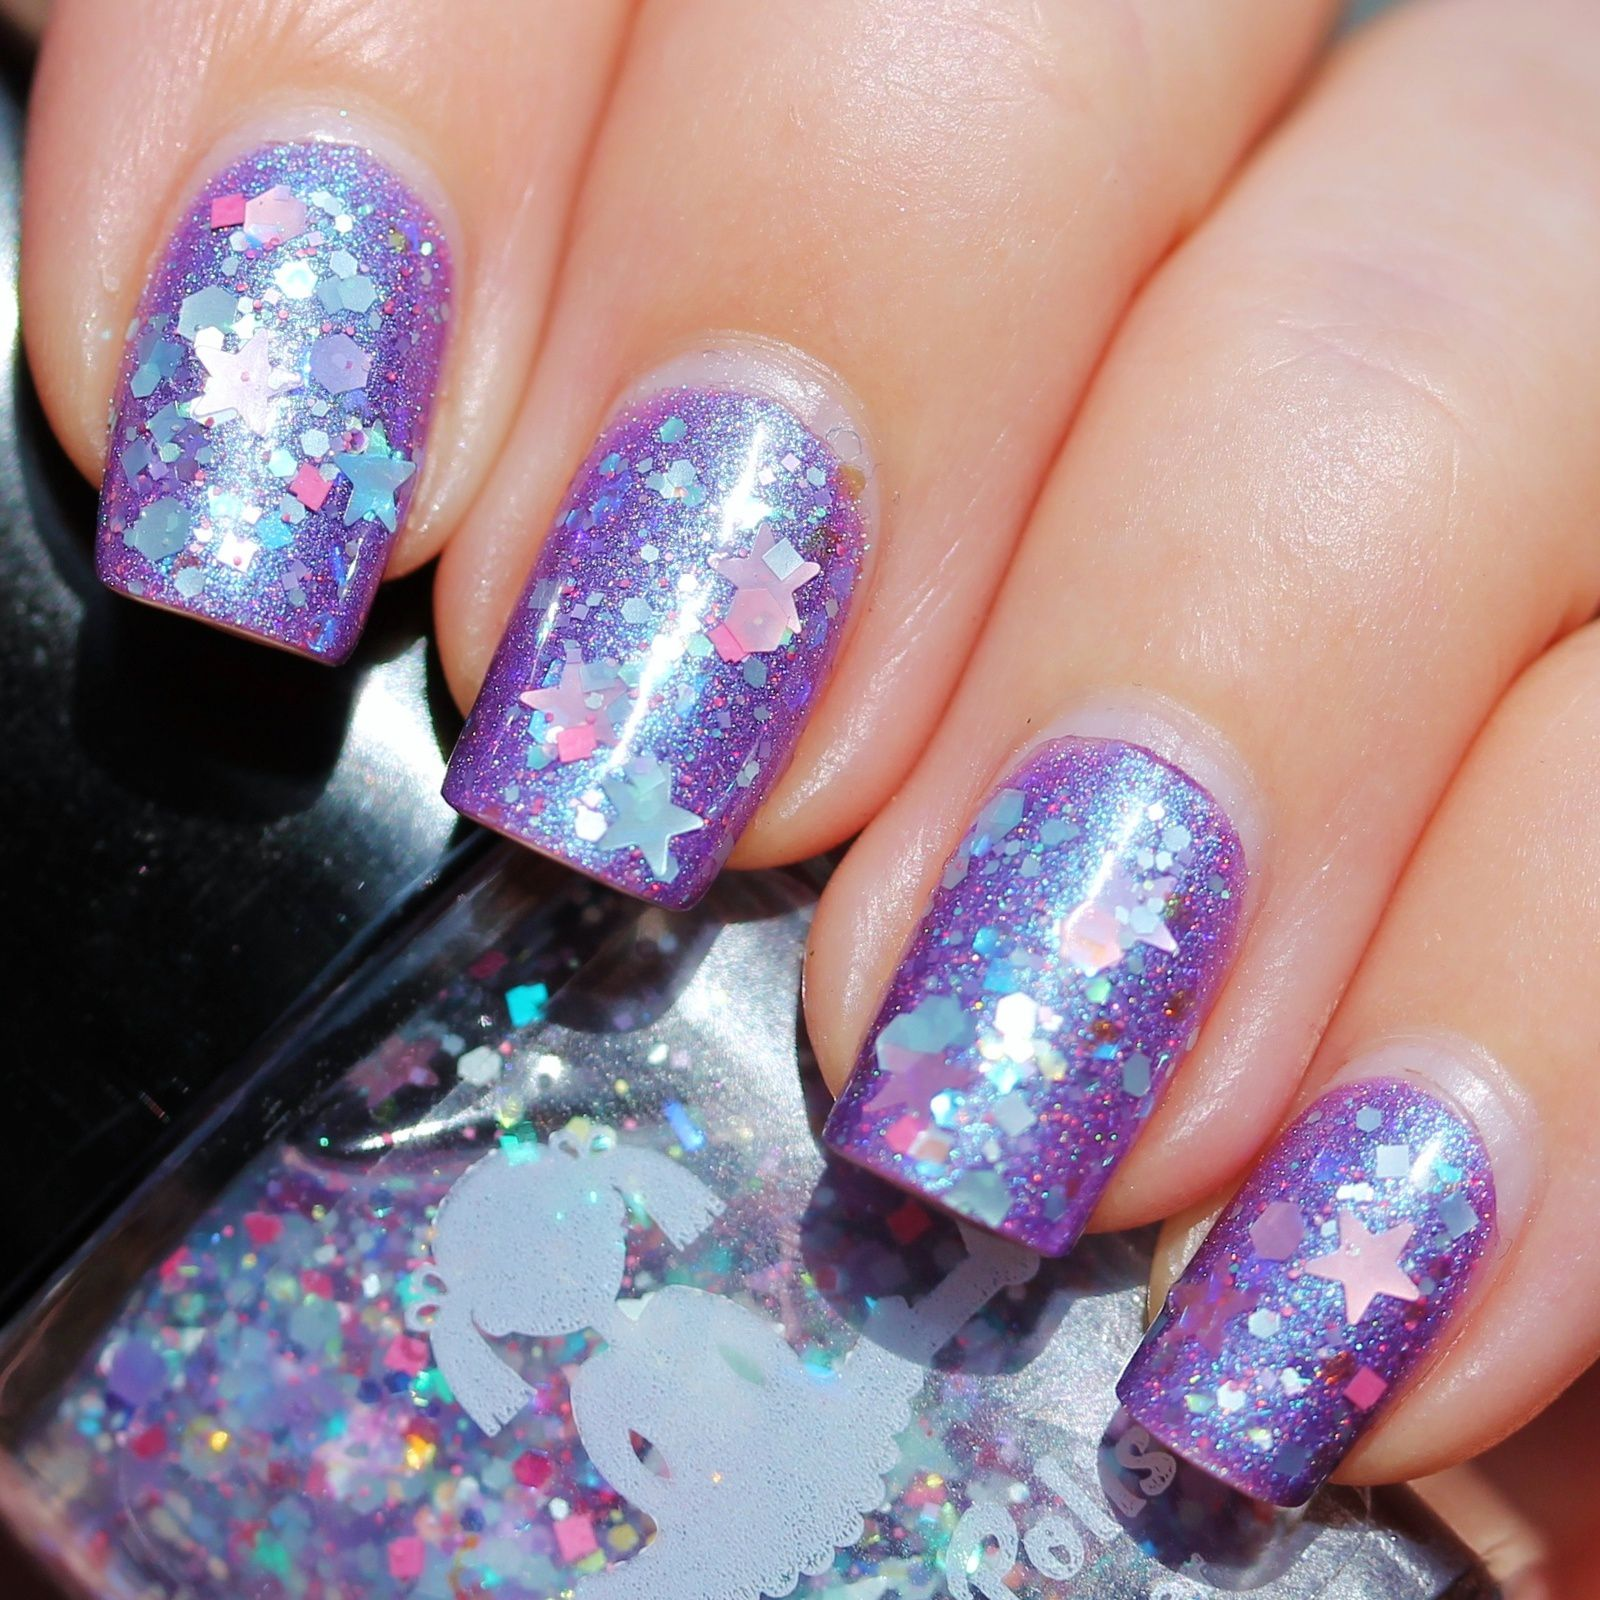 Nfu Oh Aqua Base / Loki's Lacquer Divine Light / Dollish Polish Care Bear Stare / Poshe Top Coat